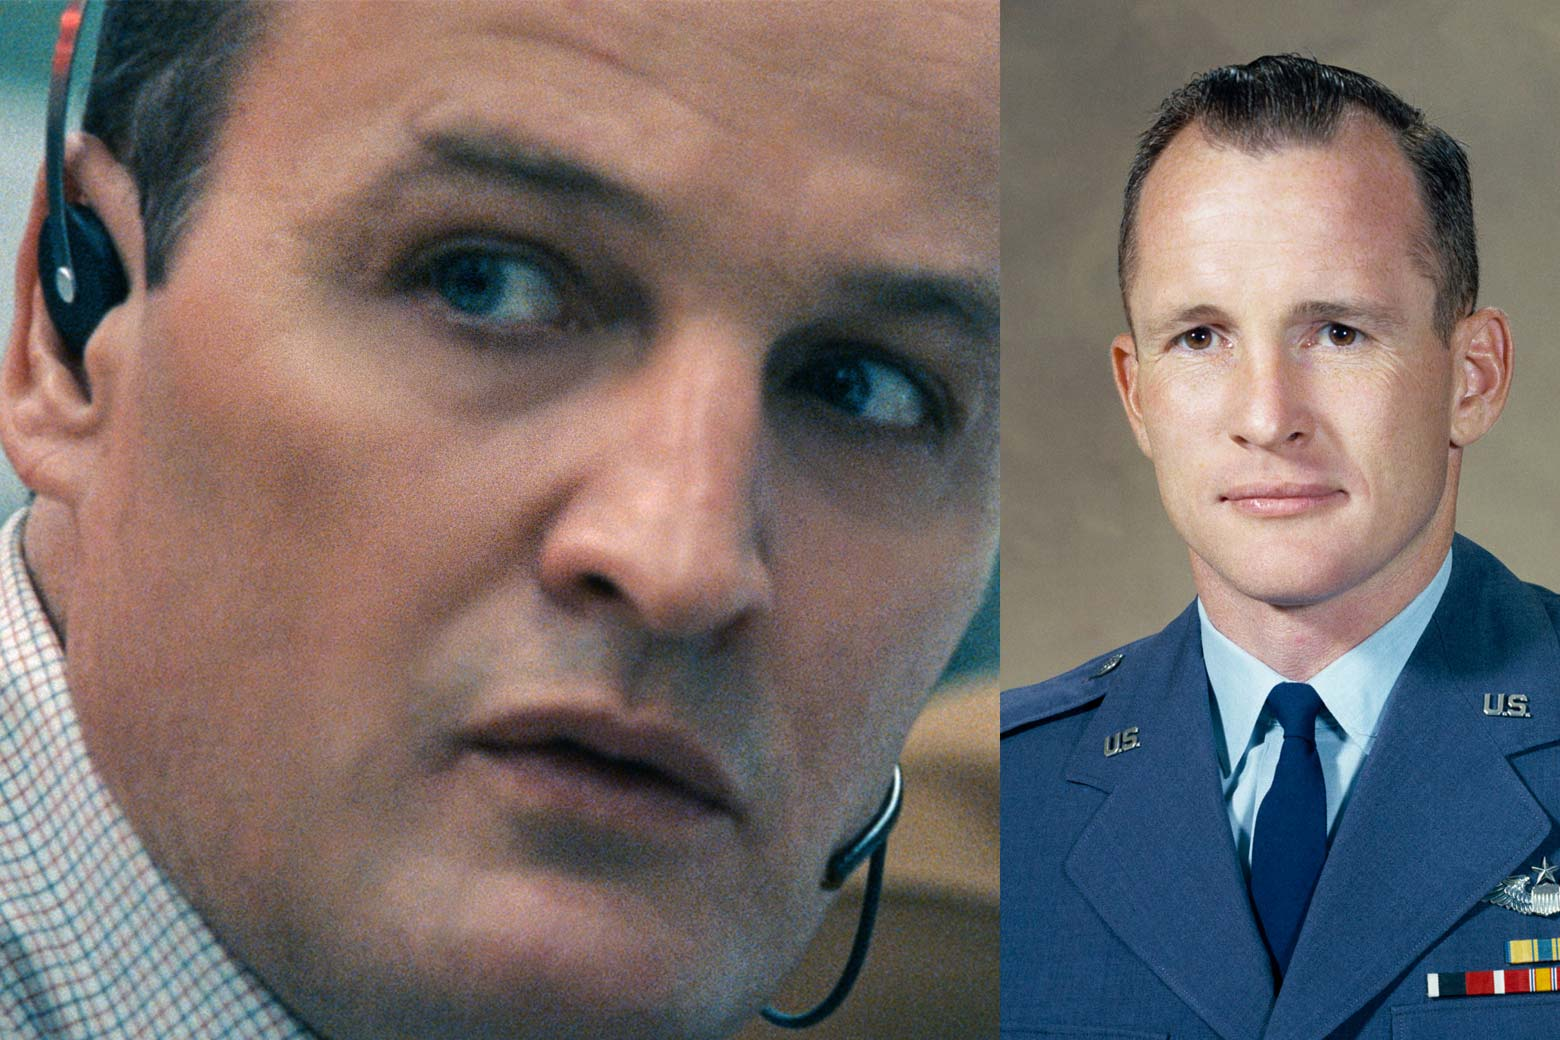 Side-by-side of actor Jason Clarke and astronaut Ed White.